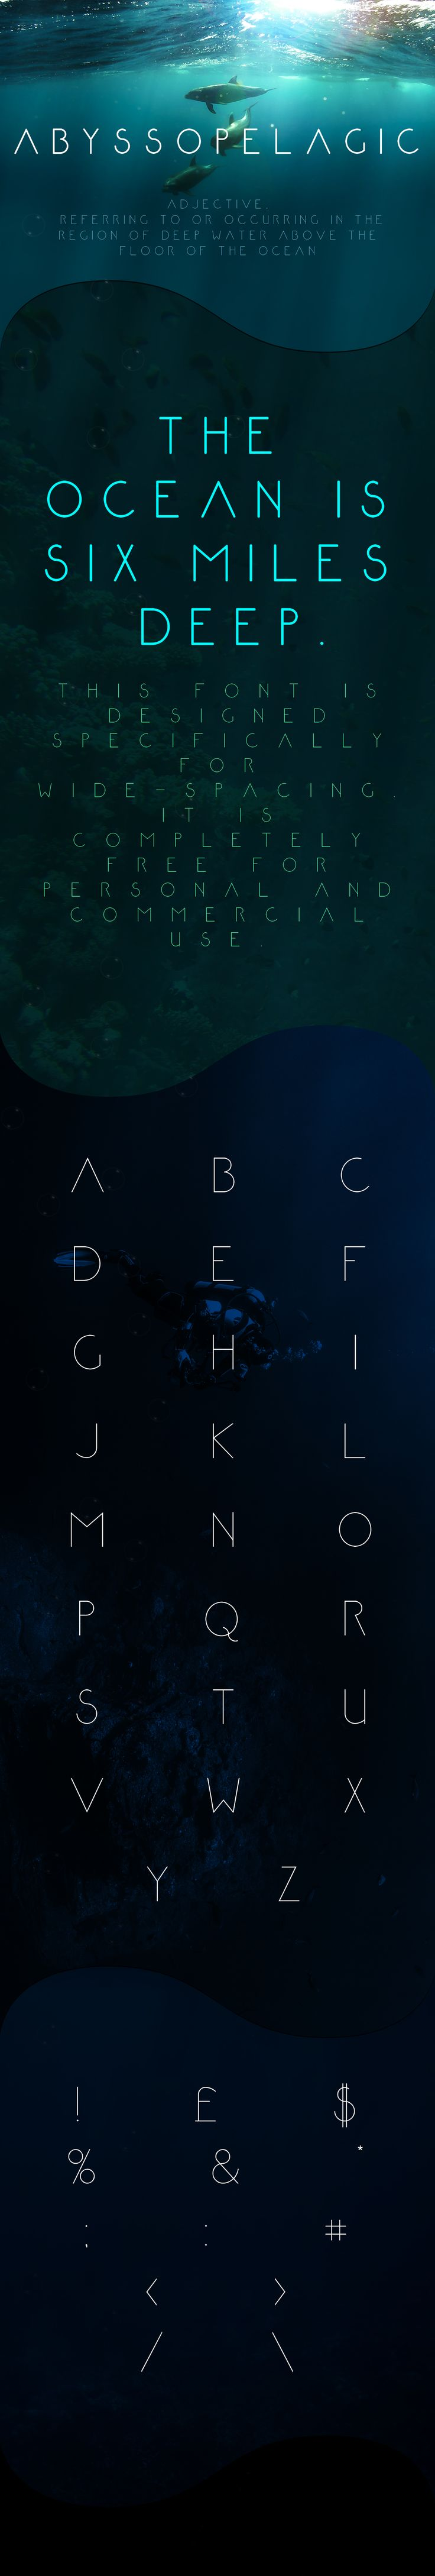 Abyssopelagic - free Personal & Commercial font on Behance